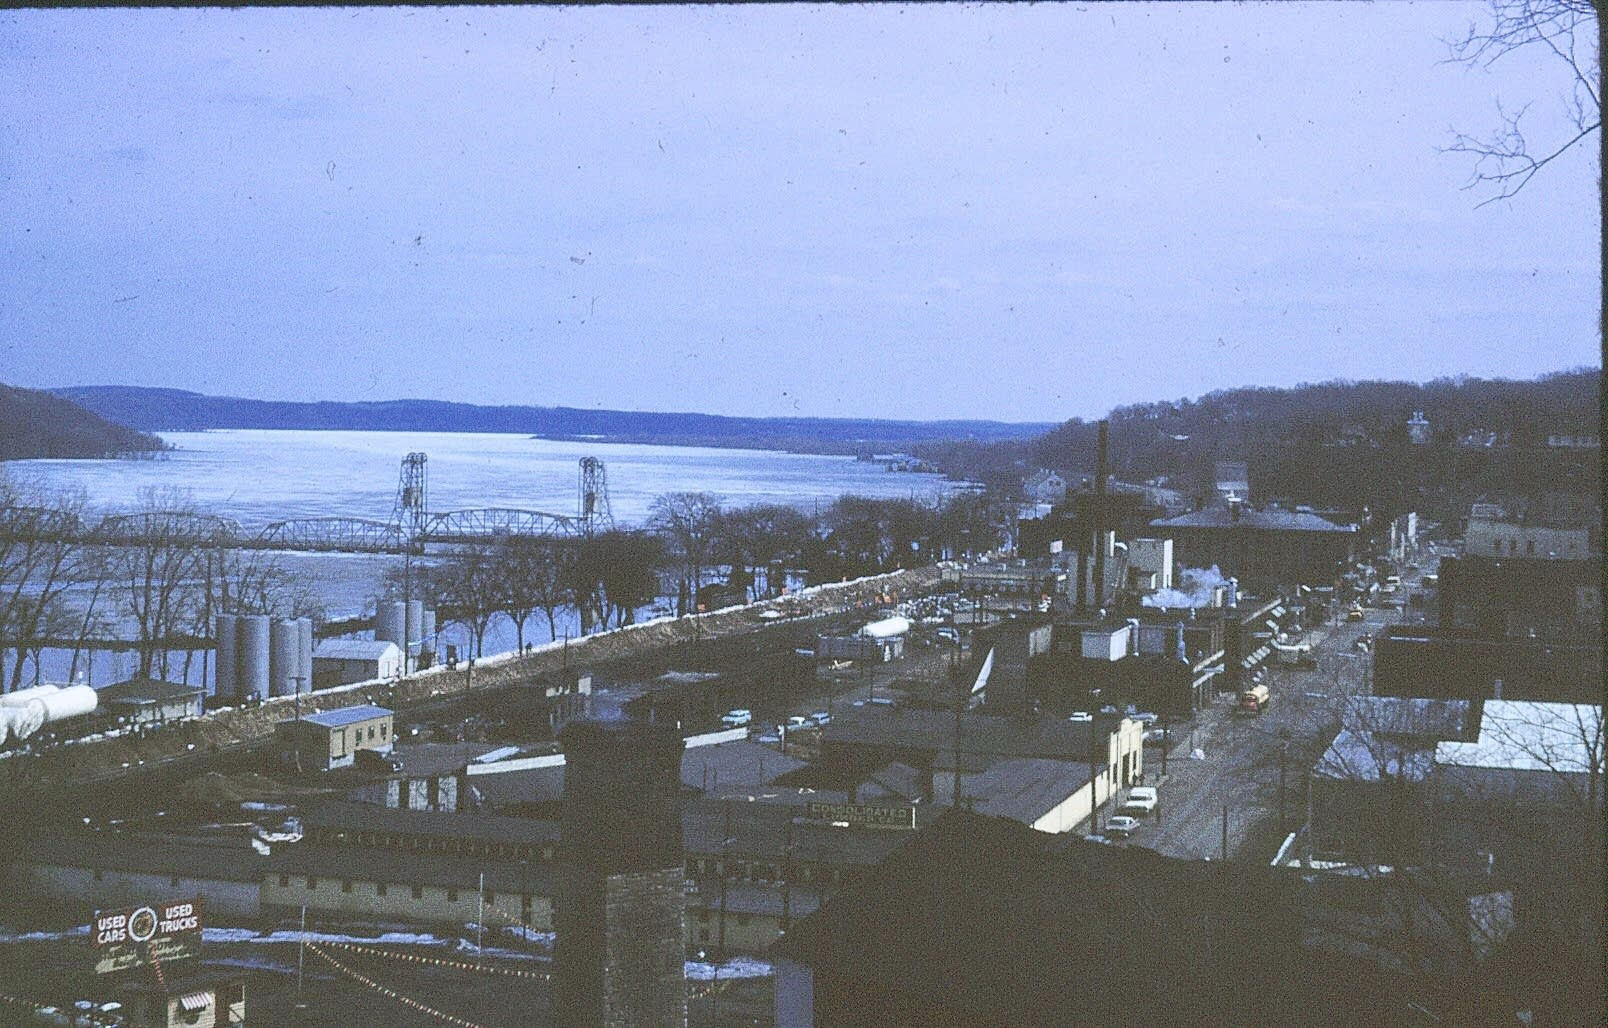 Downtown Stillwater, Minn., and the dike that protected the town.